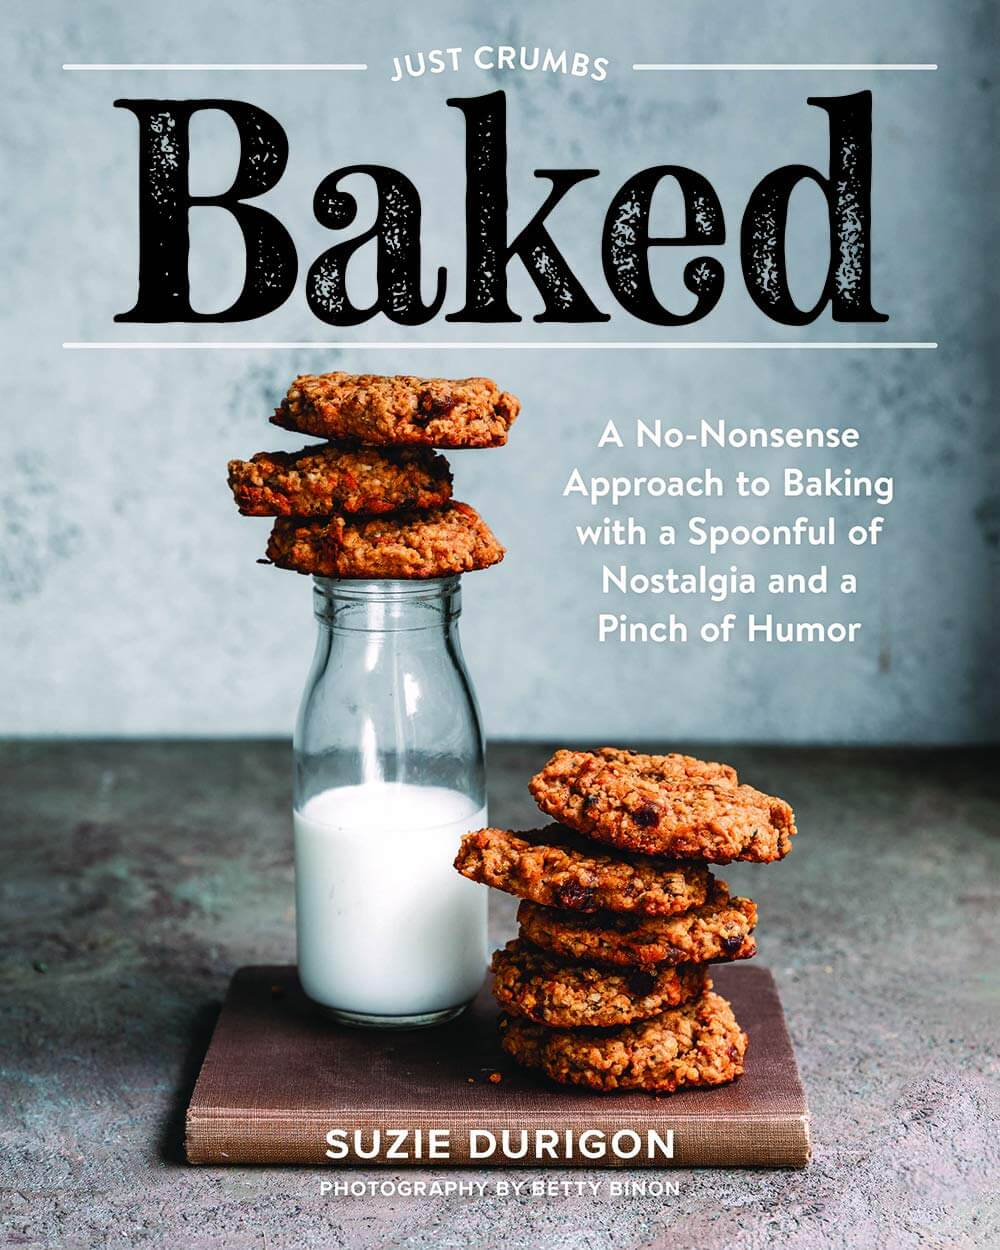 Baked by Suzie Durigon